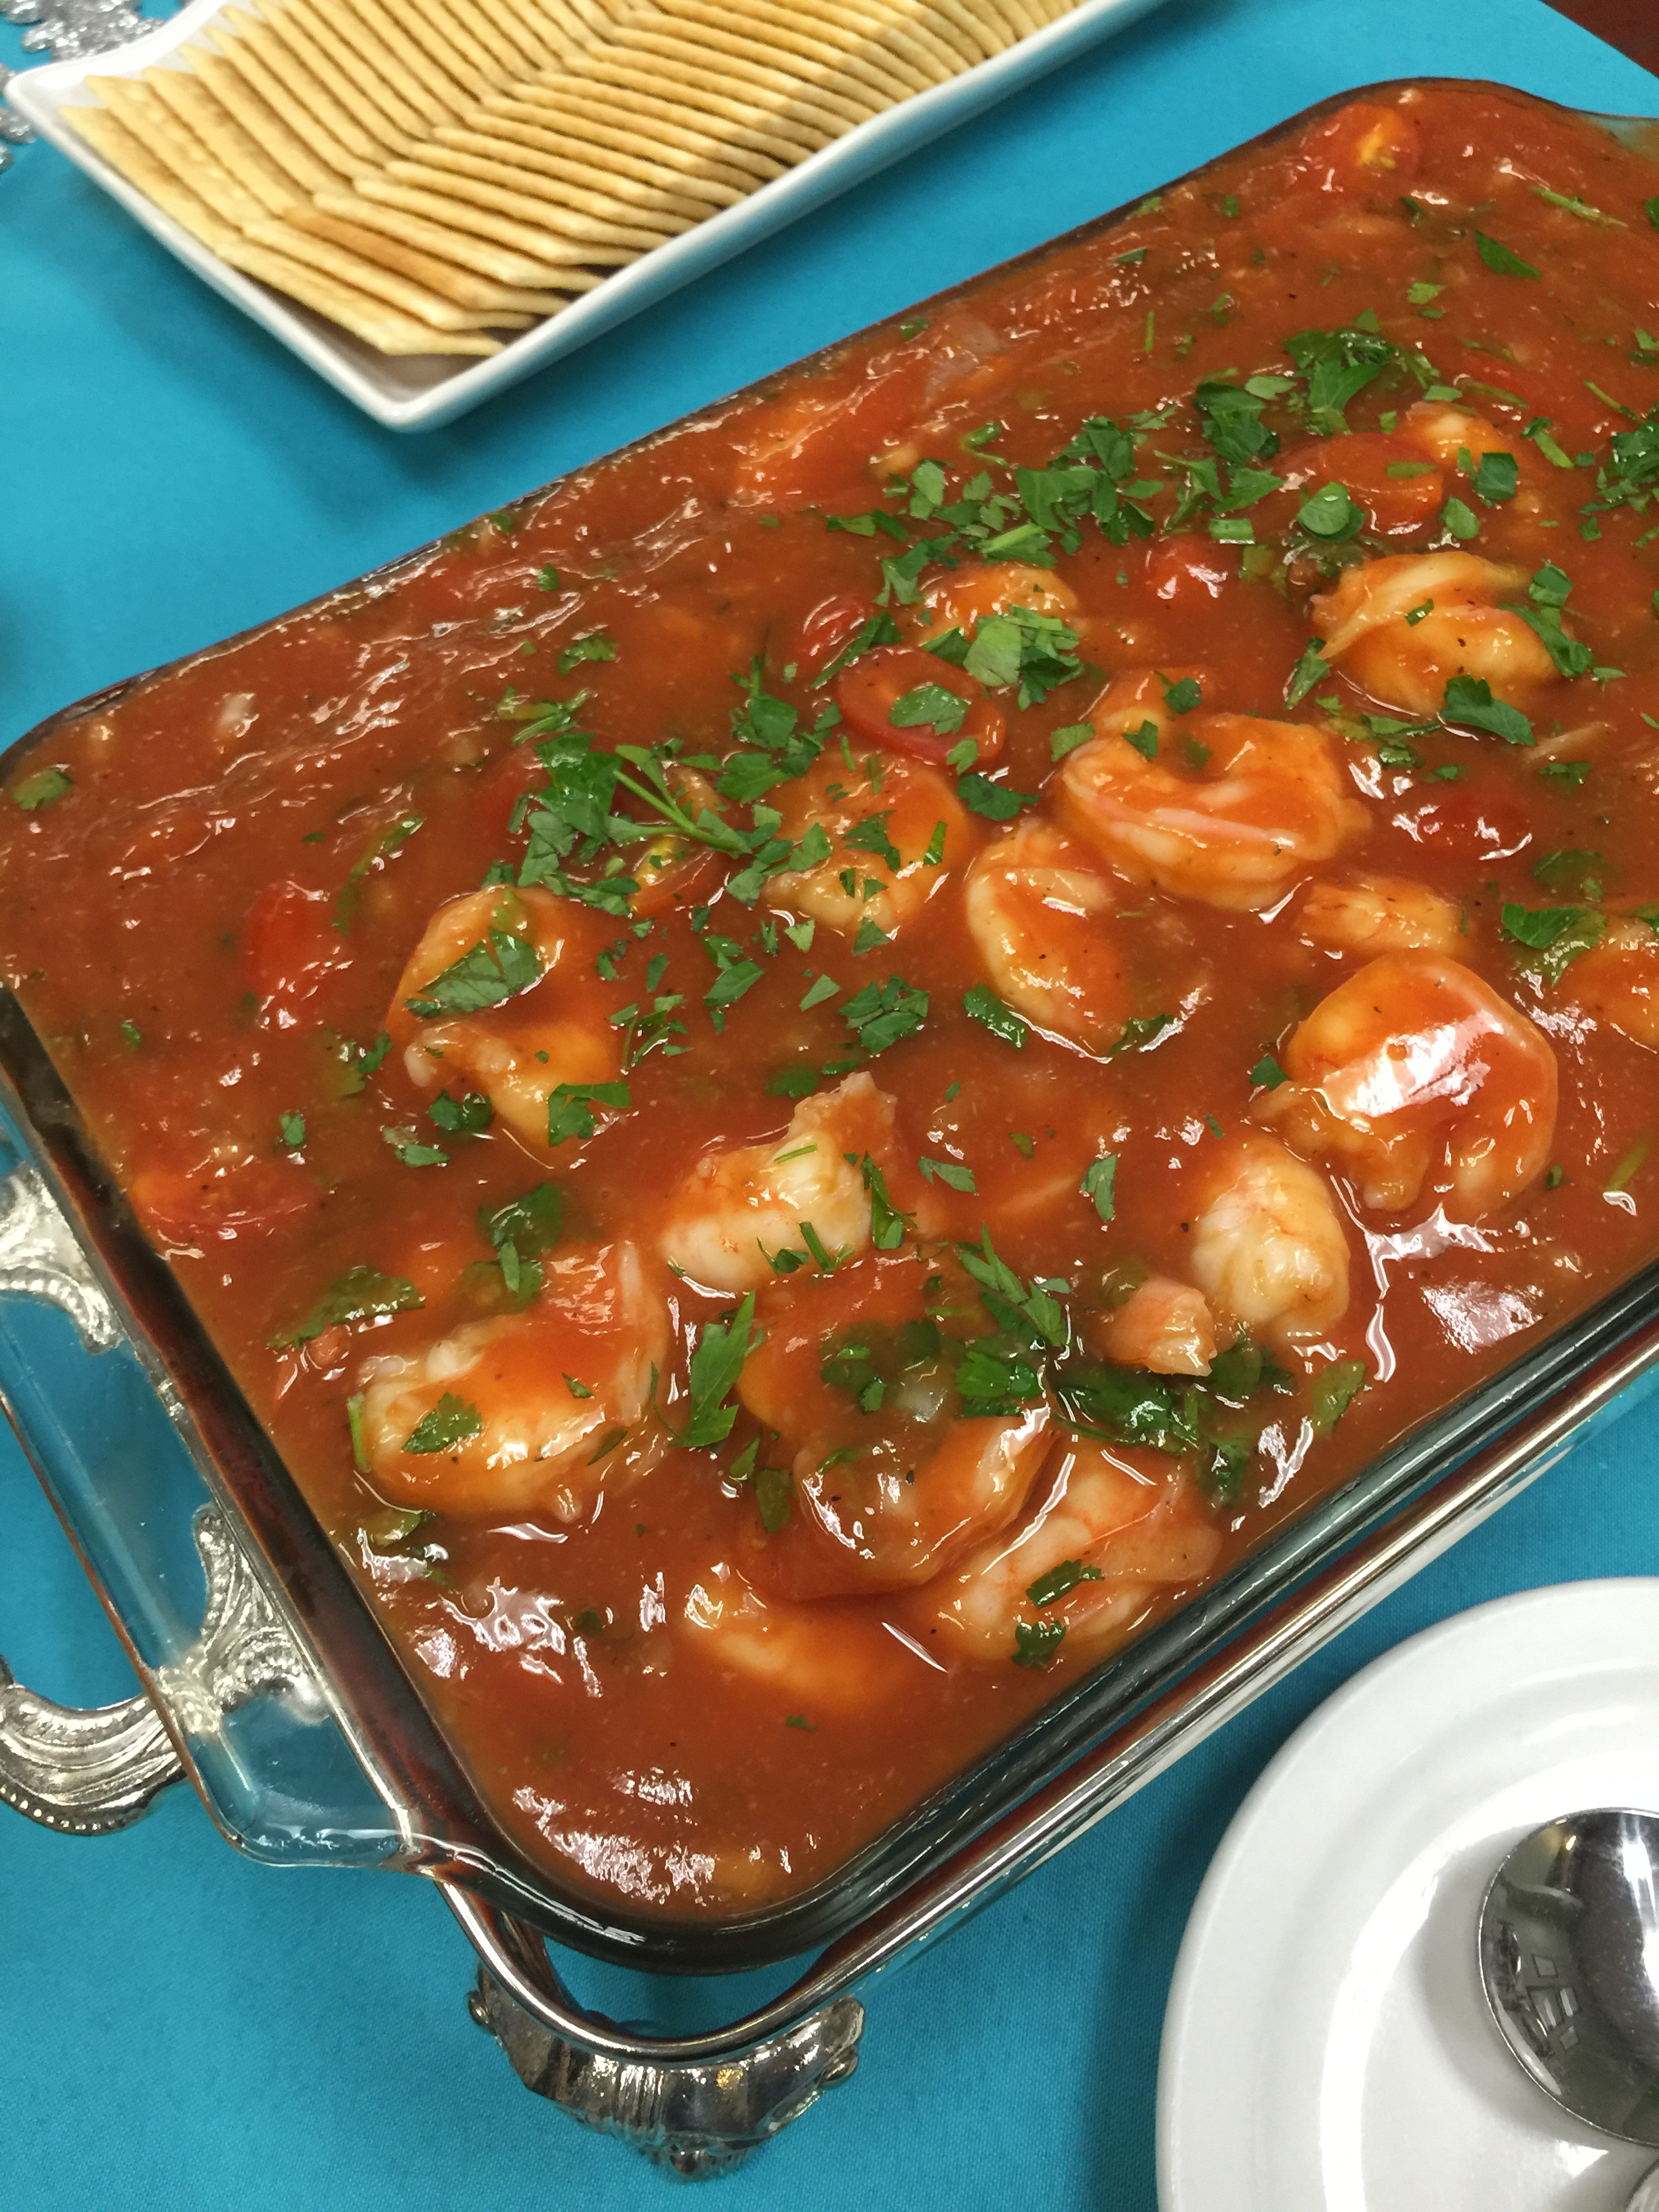 Shrimp in Cocktail Sauce